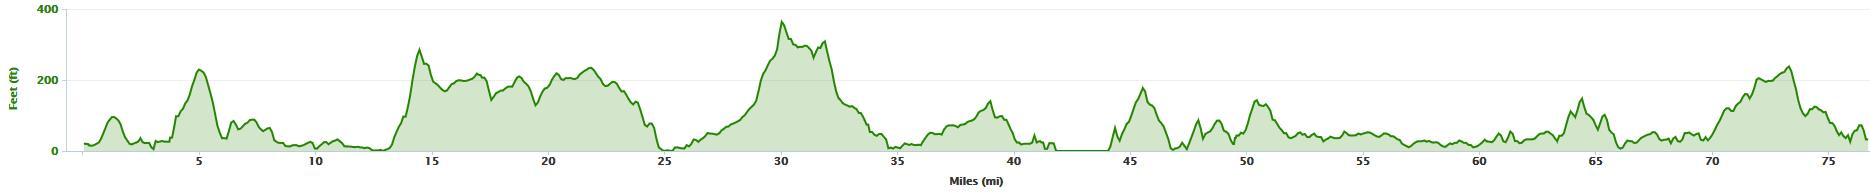 Elevation profile from Tralee to Lahinch